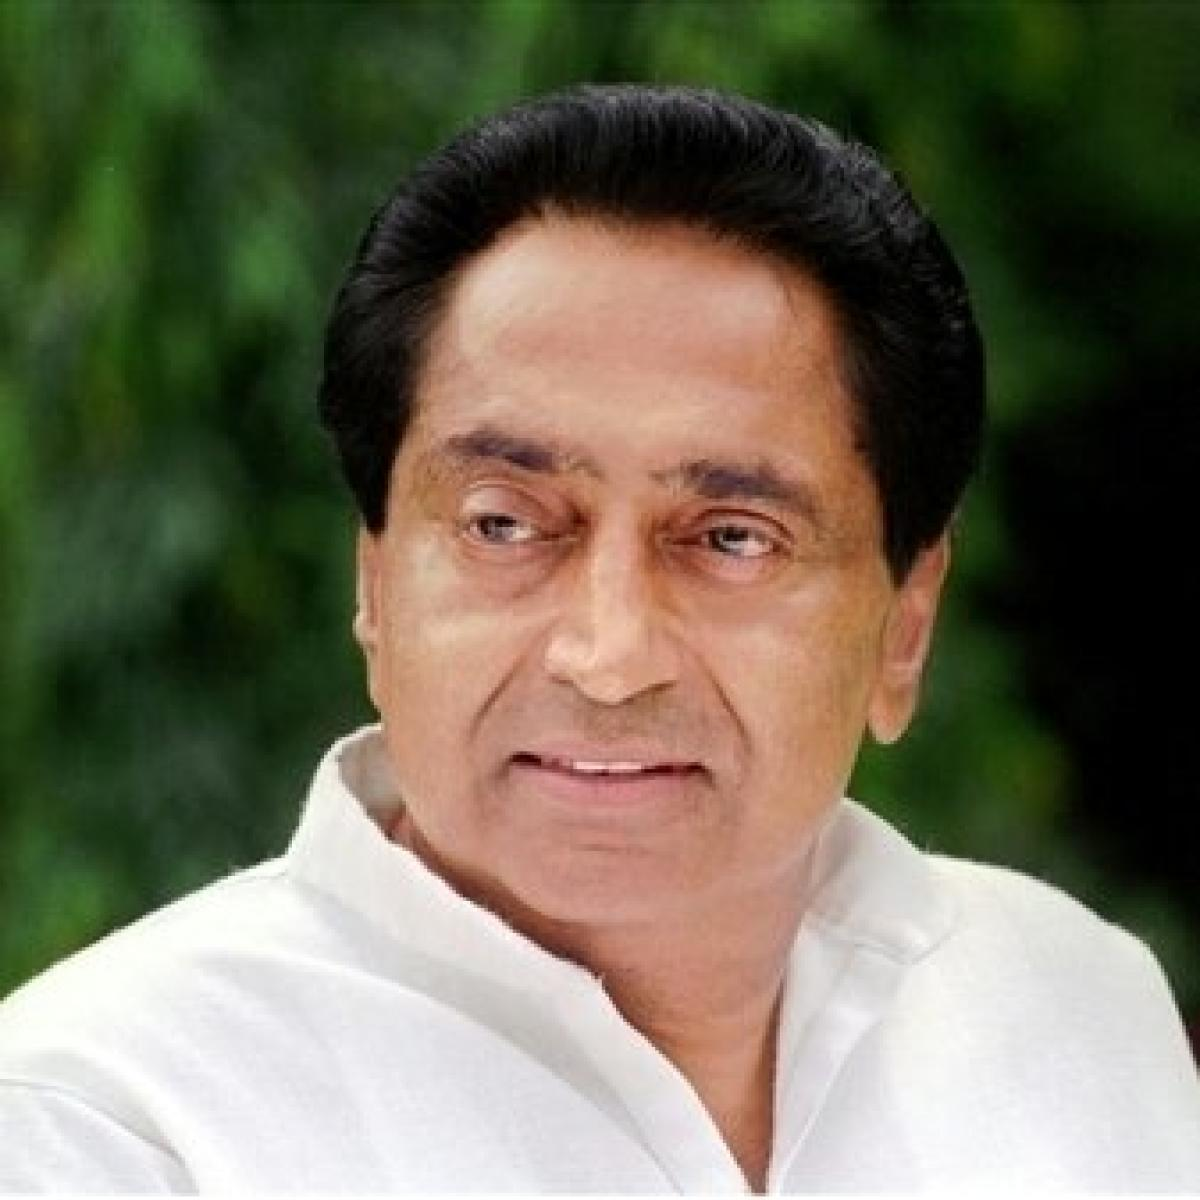 The Congress appointed senior leader Kamal Nath as president of its Madhya Pradesh unit. Pic @OfficeOfKN